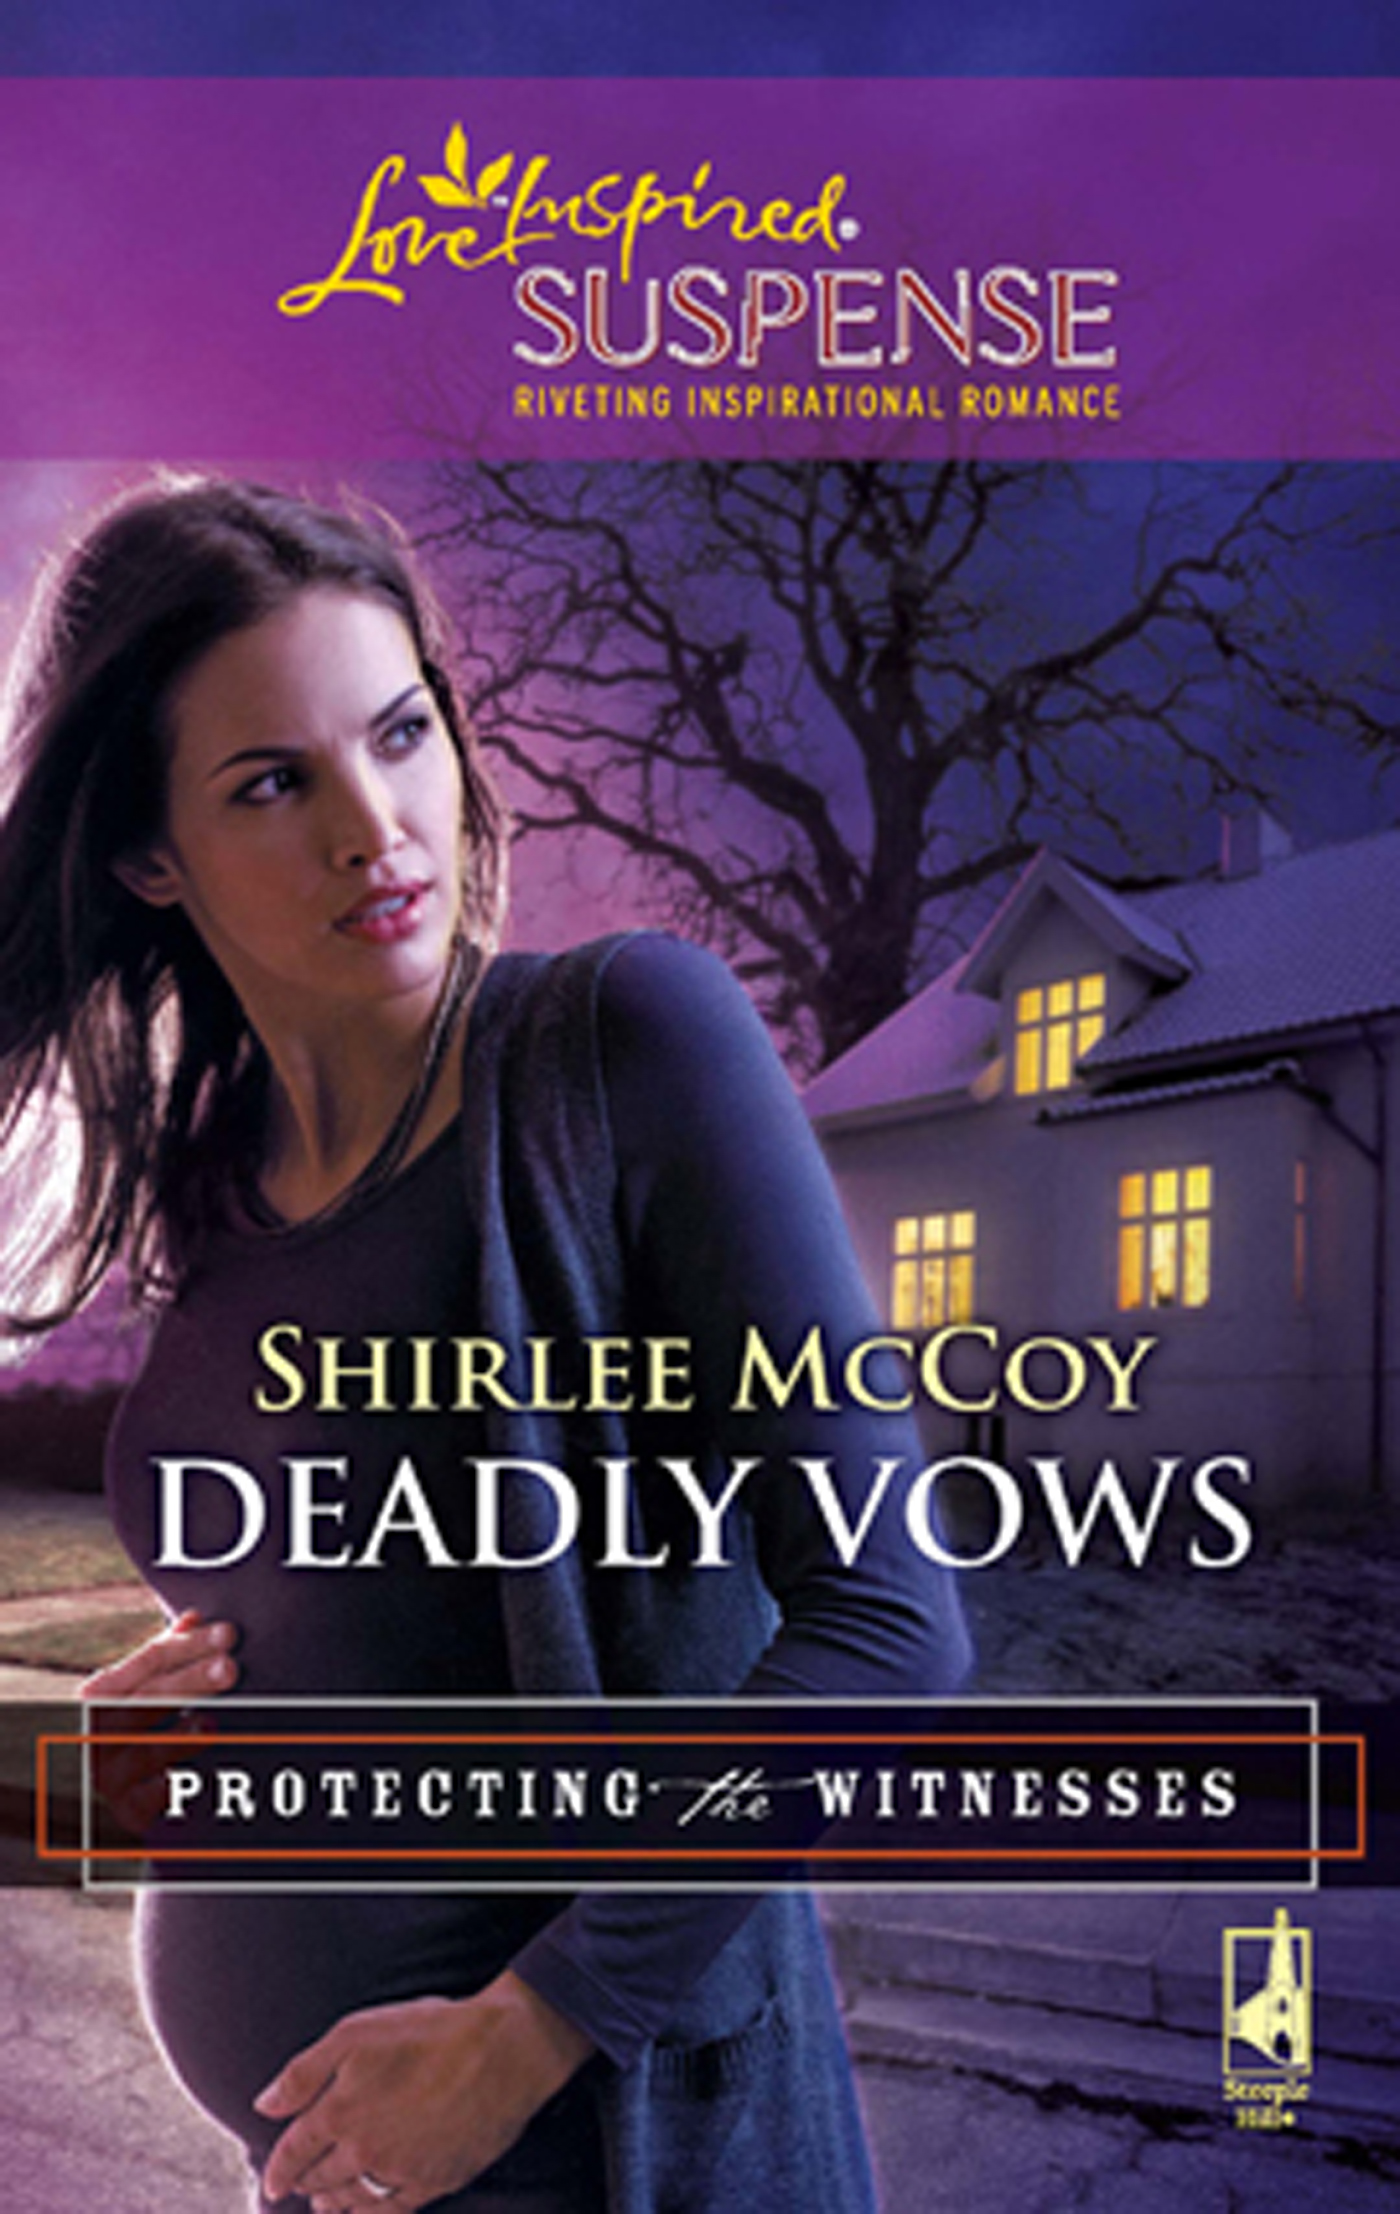 Deadly Vows (Mills & Boon Love Inspired Suspense) (Protecting the Witnesses - Book 4)